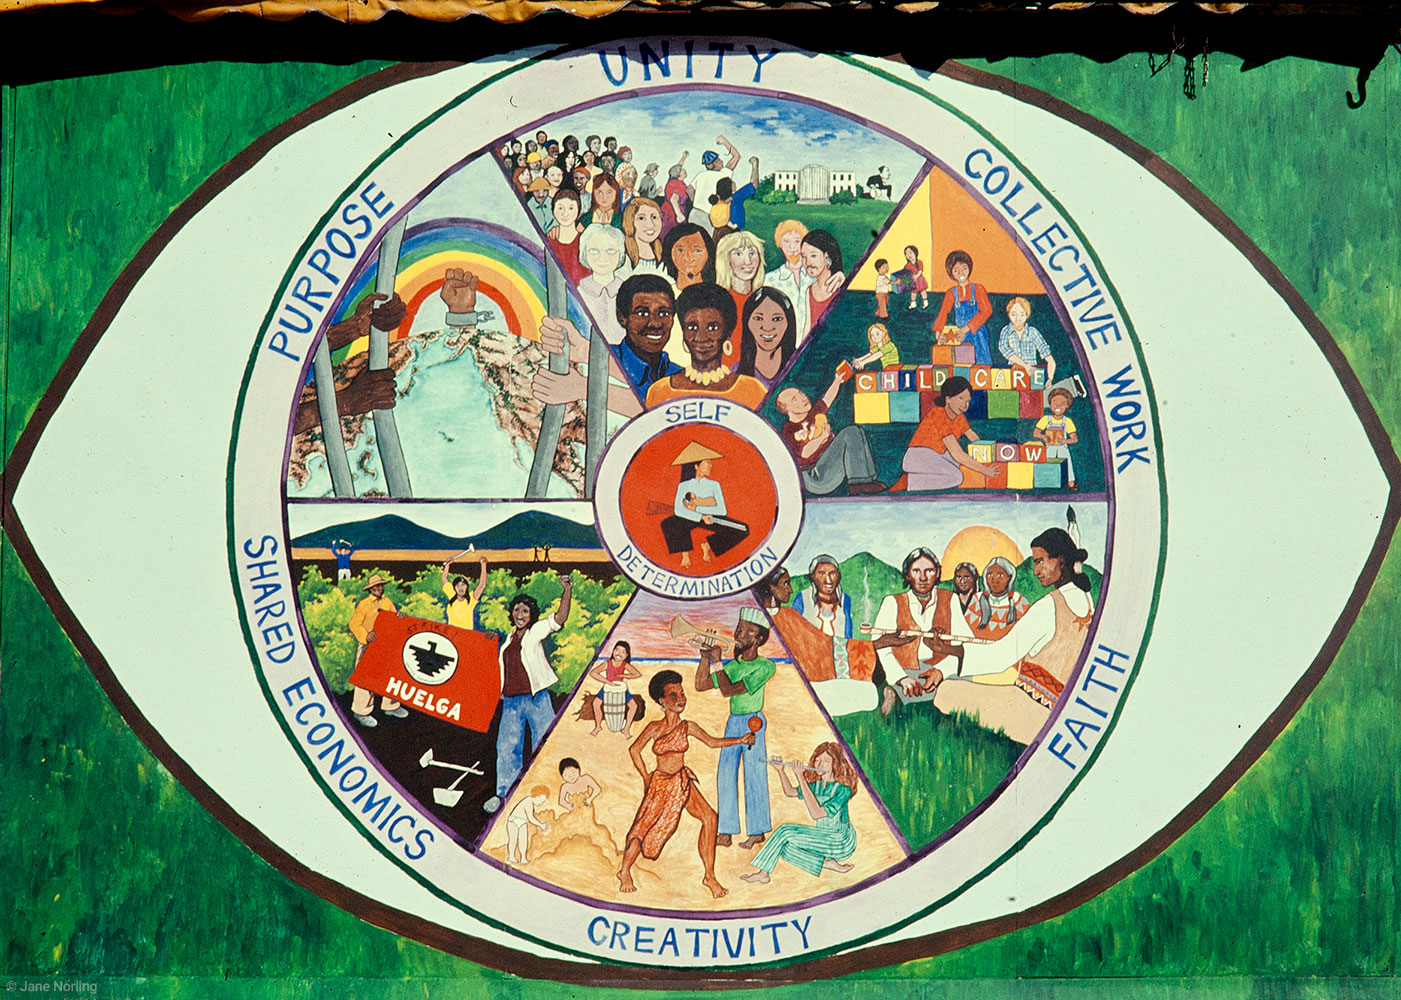 Unity , Mulready's Store, Ashbury & Haight, San Francisco CA. Haight Ashbury Muralists–Miranda Bergman, Jane Norling, Jo Tucker, 1974. Illustrating African Principles of Unity. Destroyed.